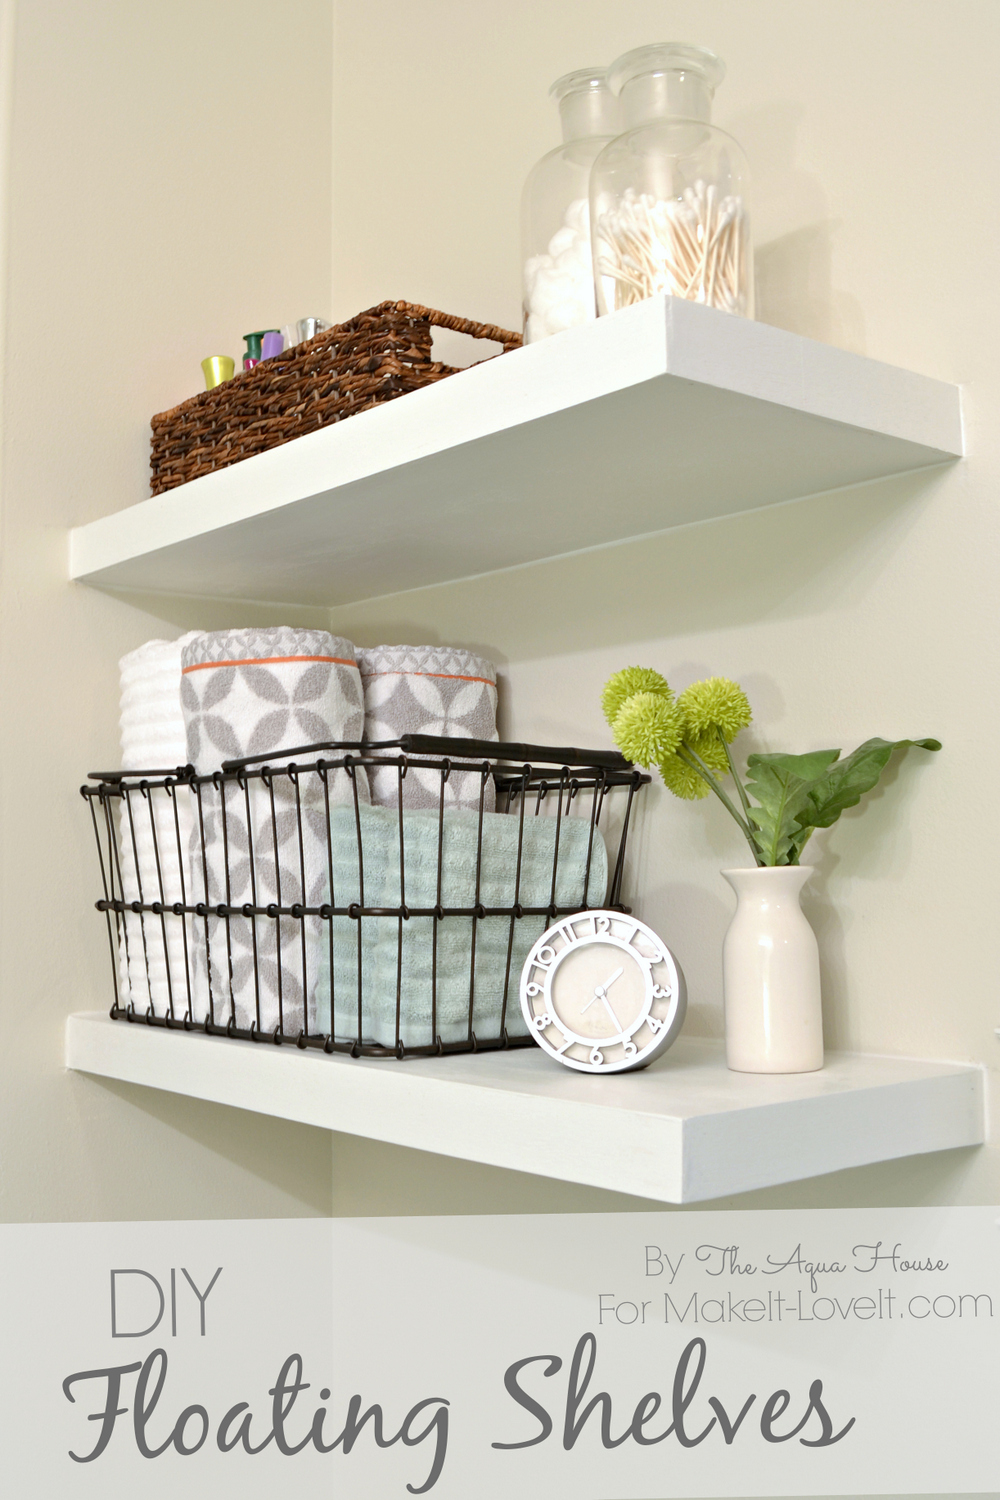 bathroom wall shelving ideas diy floating shelves a great storage solution 16195